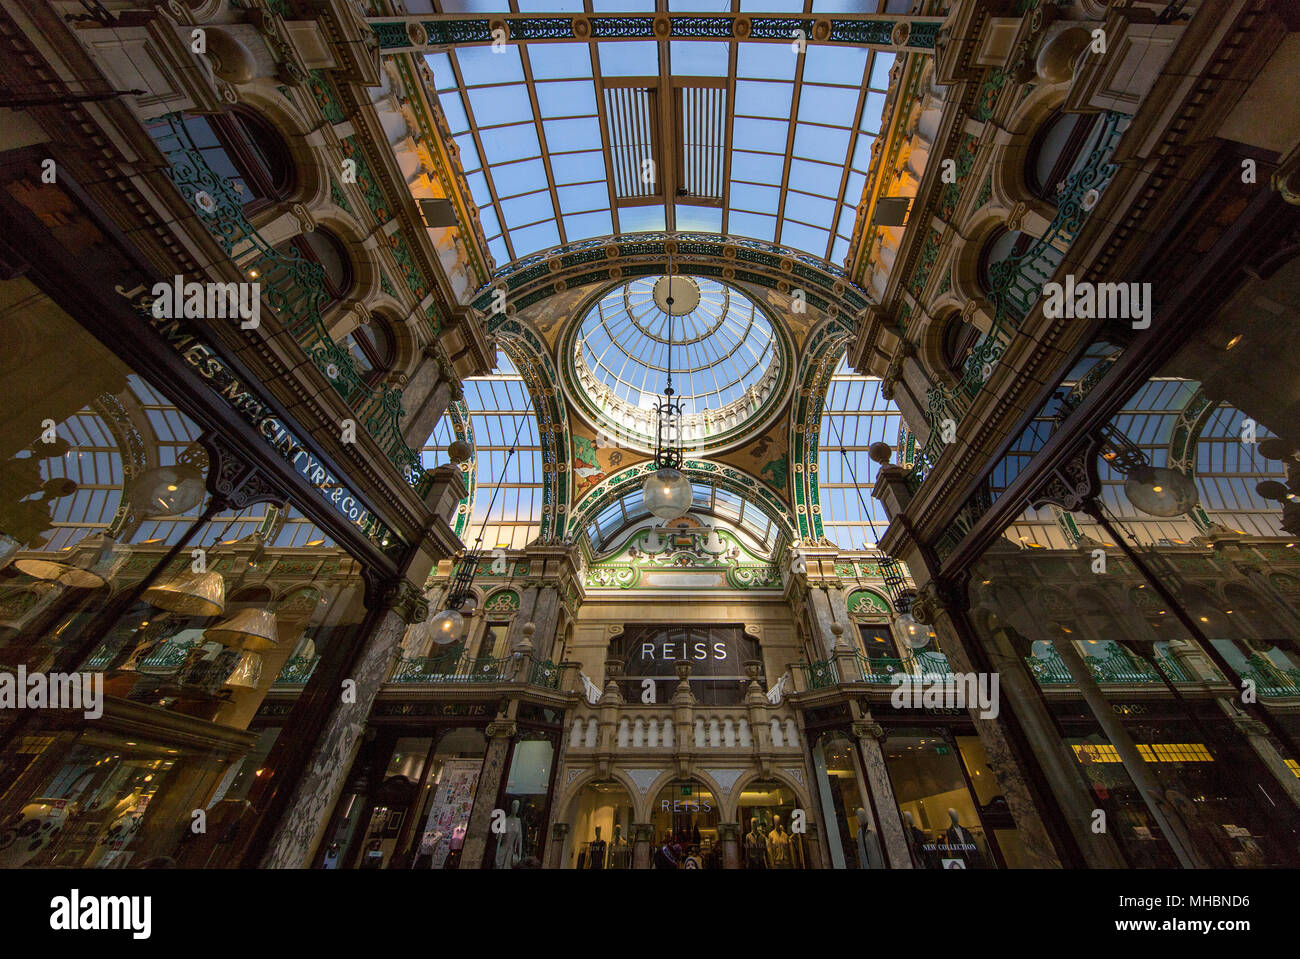 Interior of the County Arcade in Leed's Victoria Quarter Stock Photo